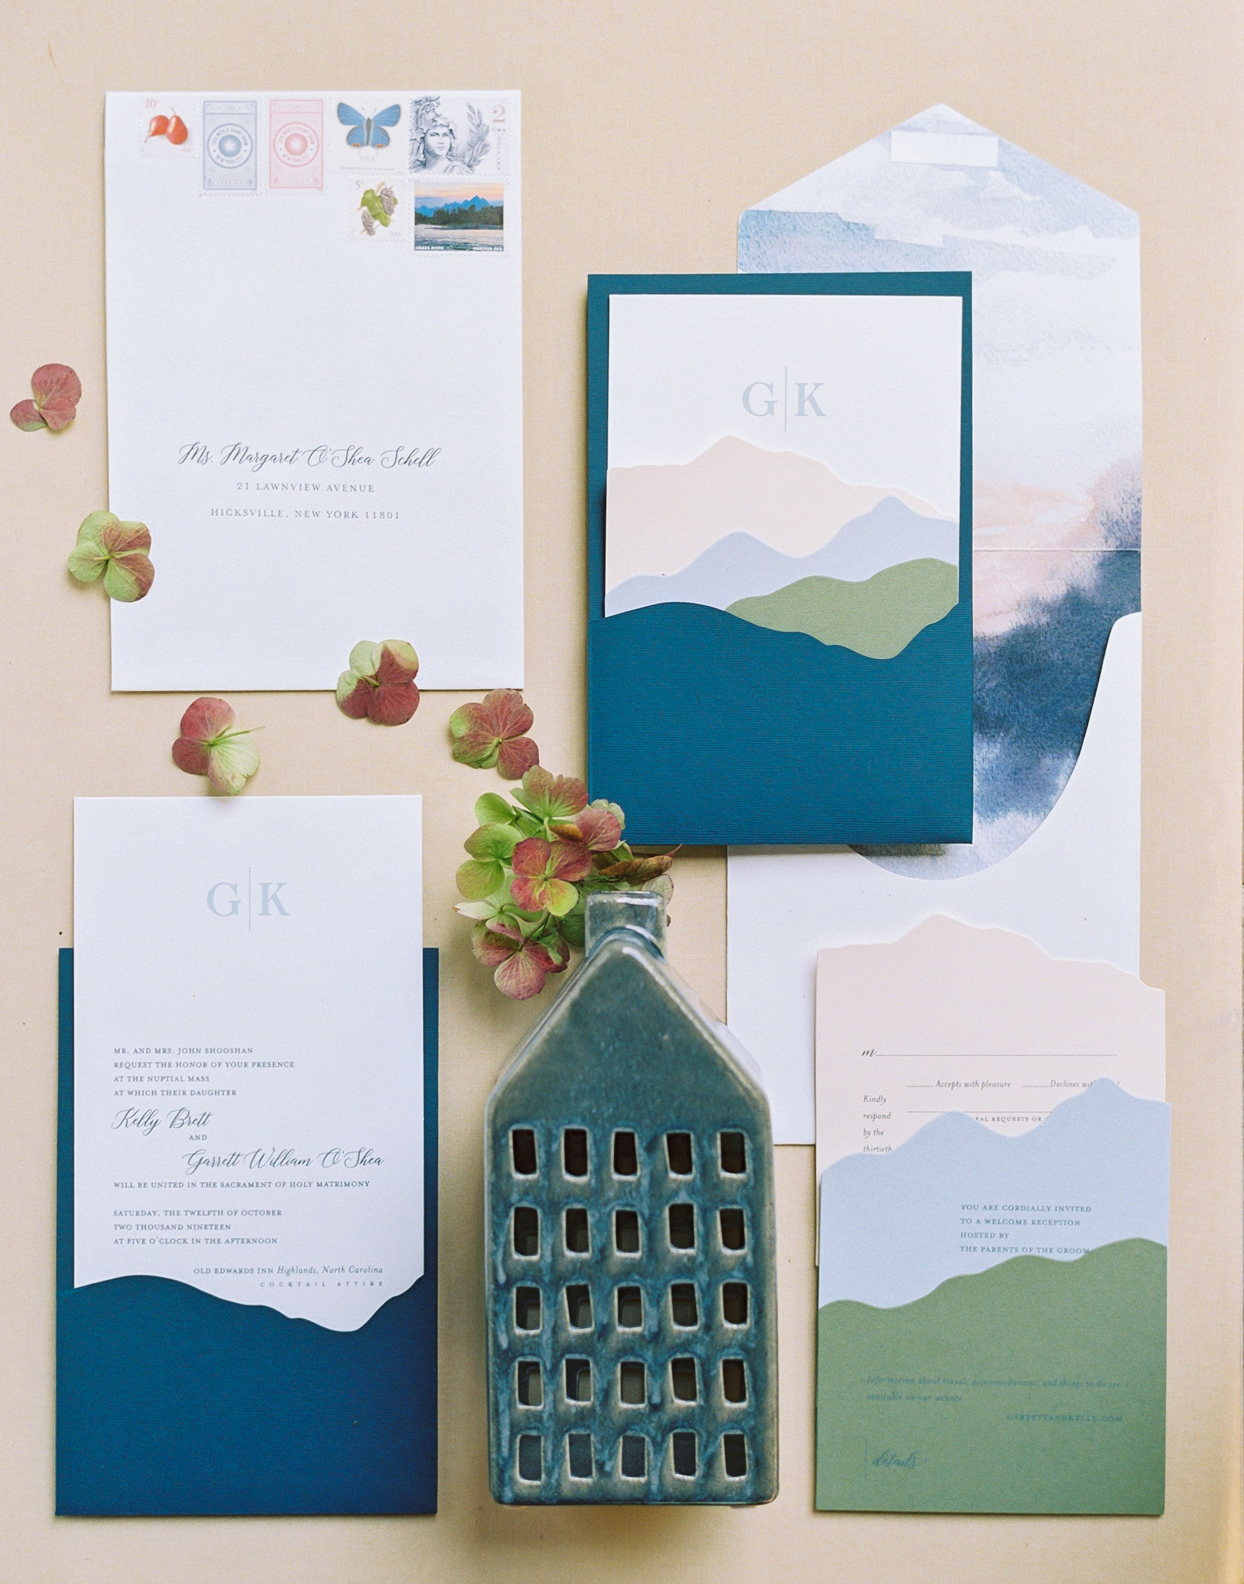 Invitation that were inspired by North Carolina mountains with a layered design